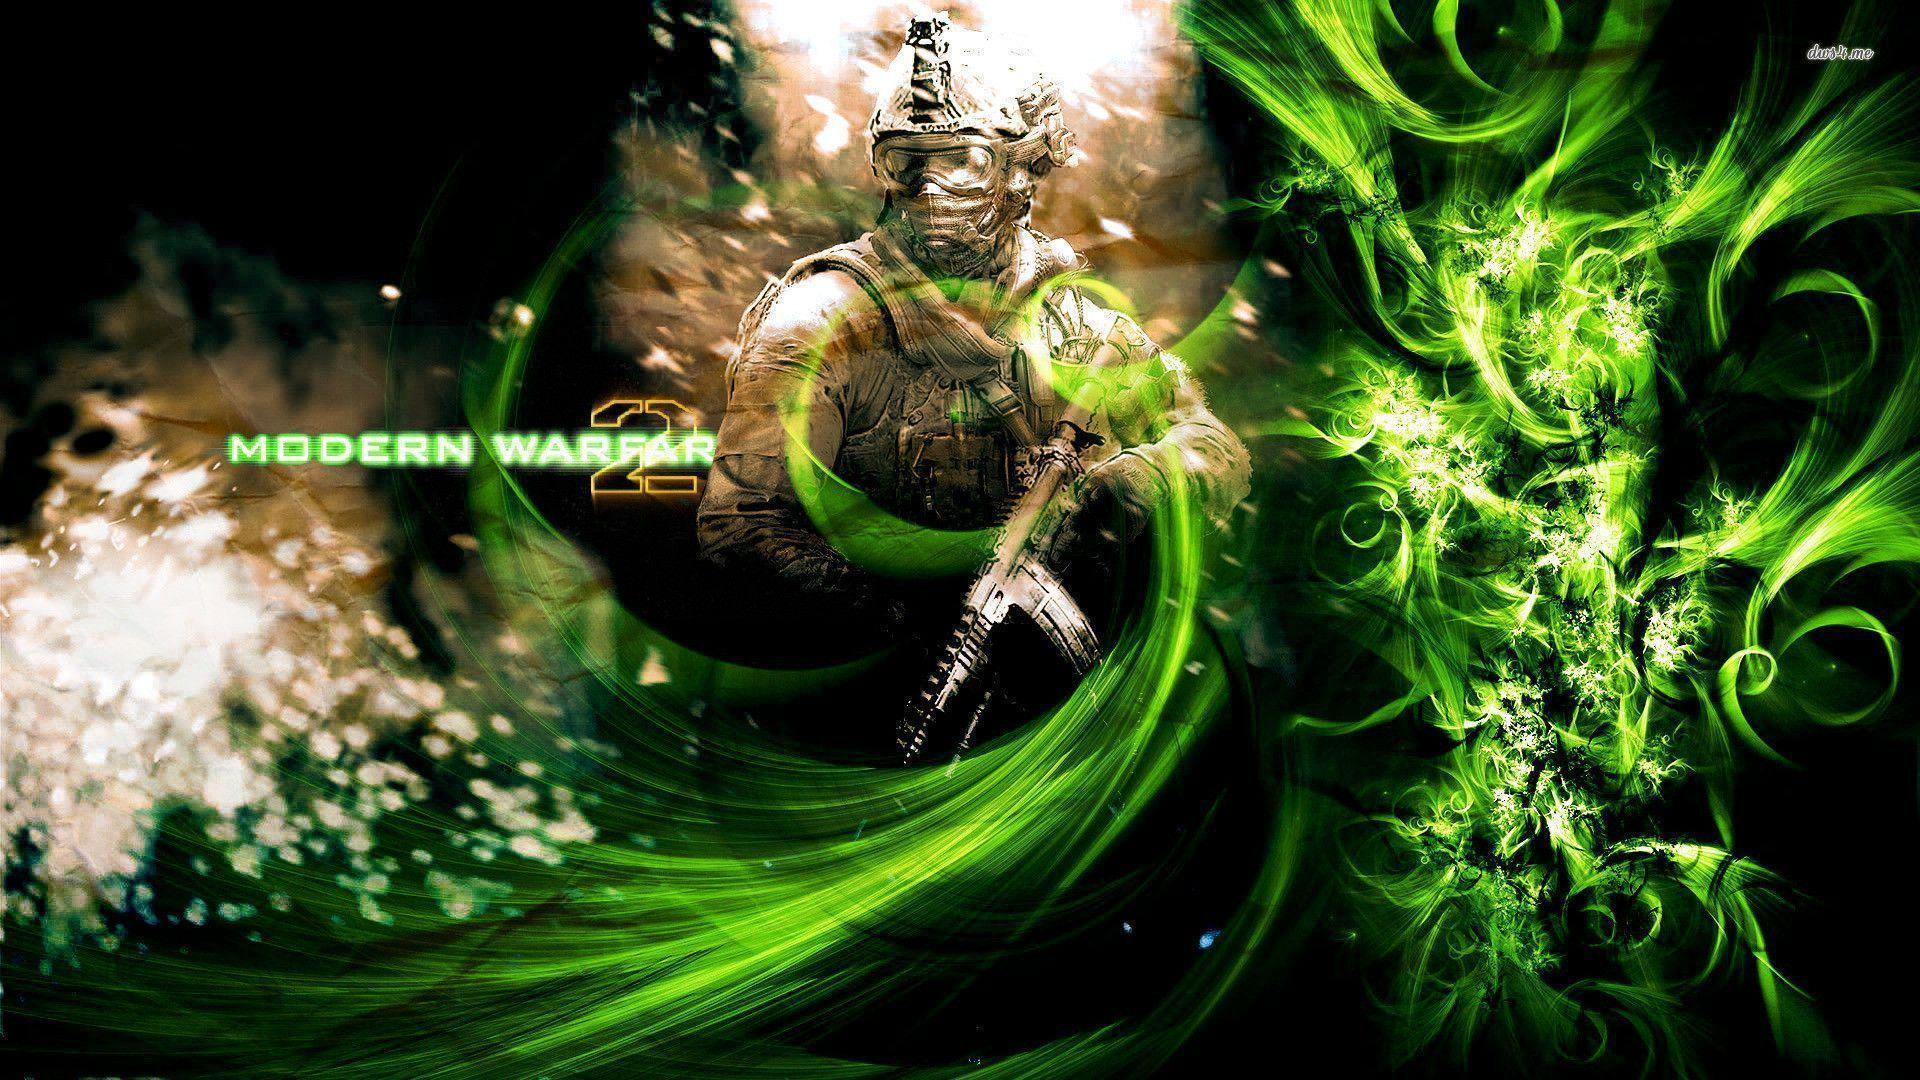 Modern warfare 2 wallpapers hd wallpaper cave for Cool modern wallpapers